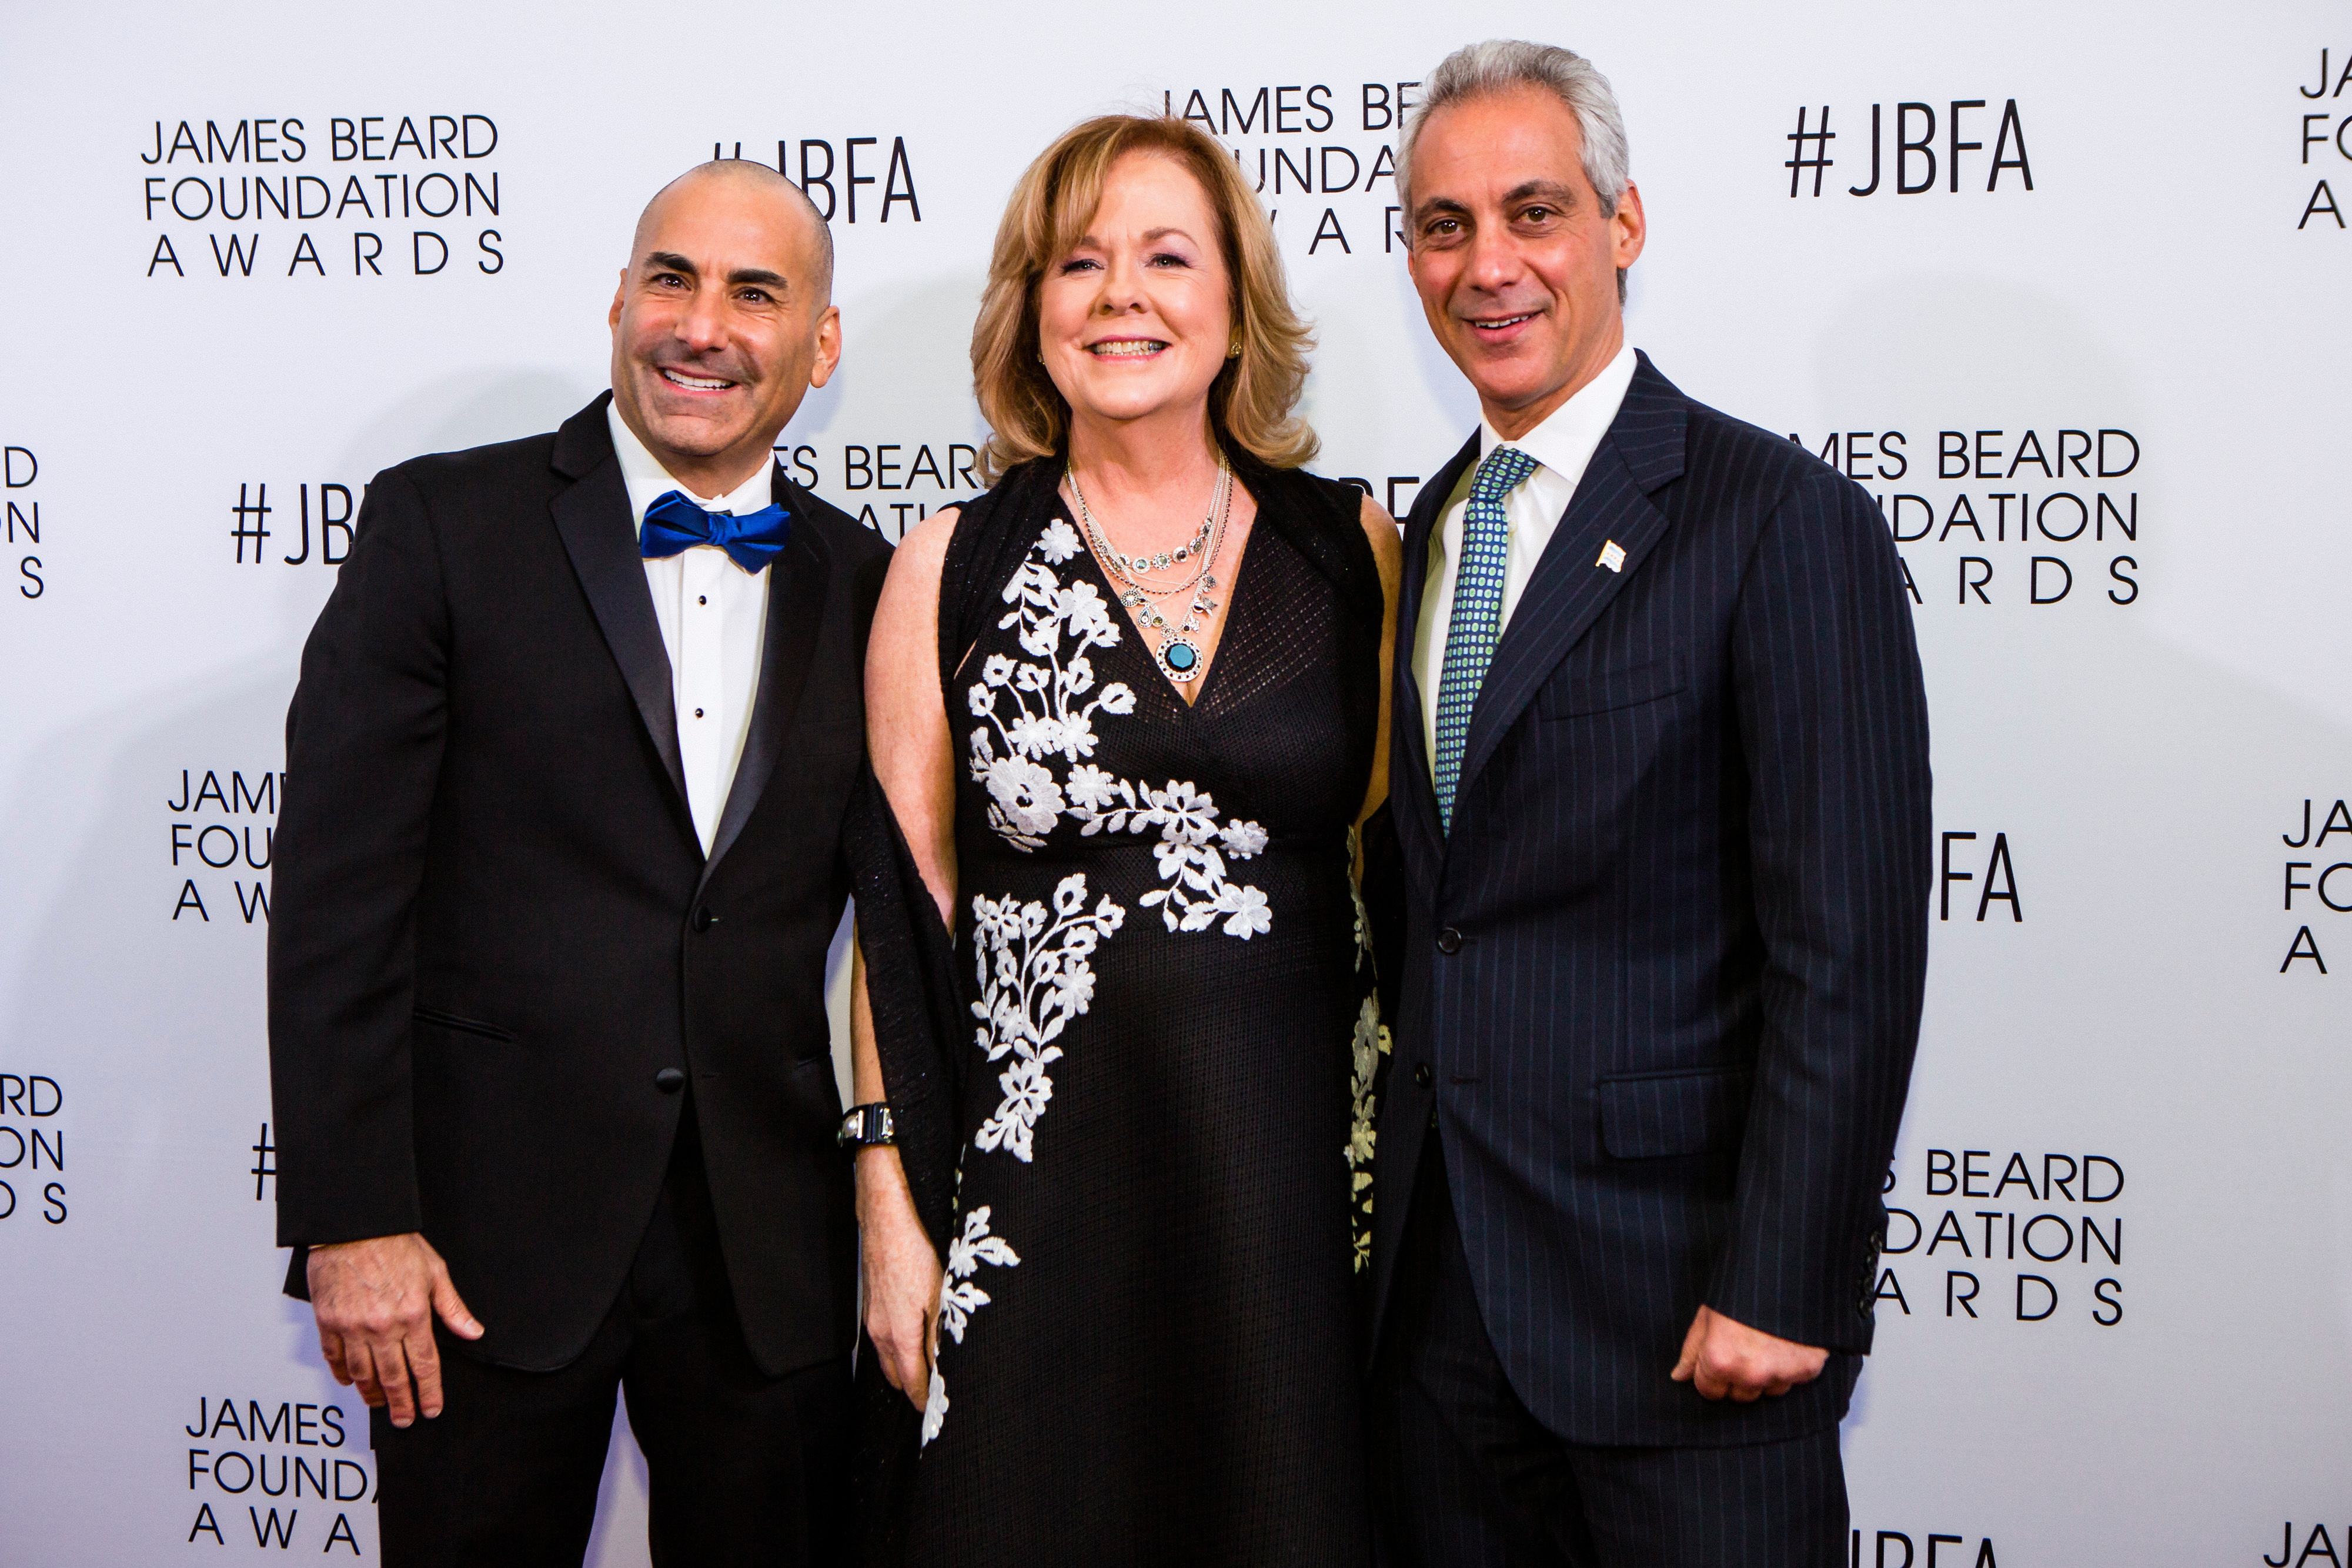 Illinois Restaurant Association President Sam Toia (left) with Susan Ungaro, president of the James Beard Foundation, and then-Mayor Rahm Emanuel at the 2016 James Beard Awards in Chicago.